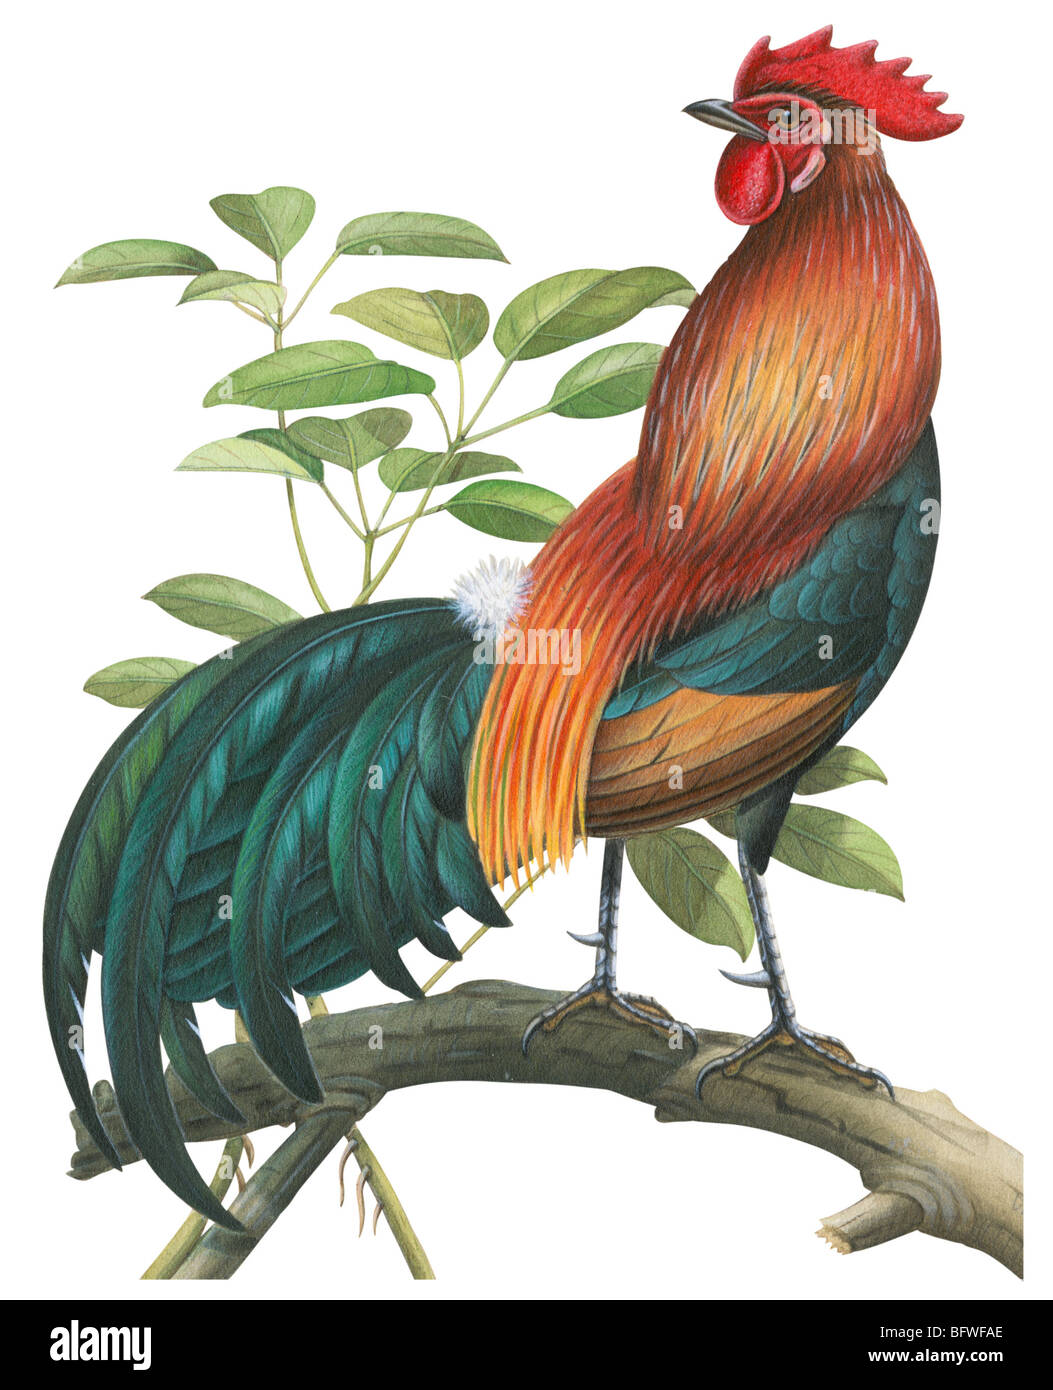 Red jungle fowl - Stock Image